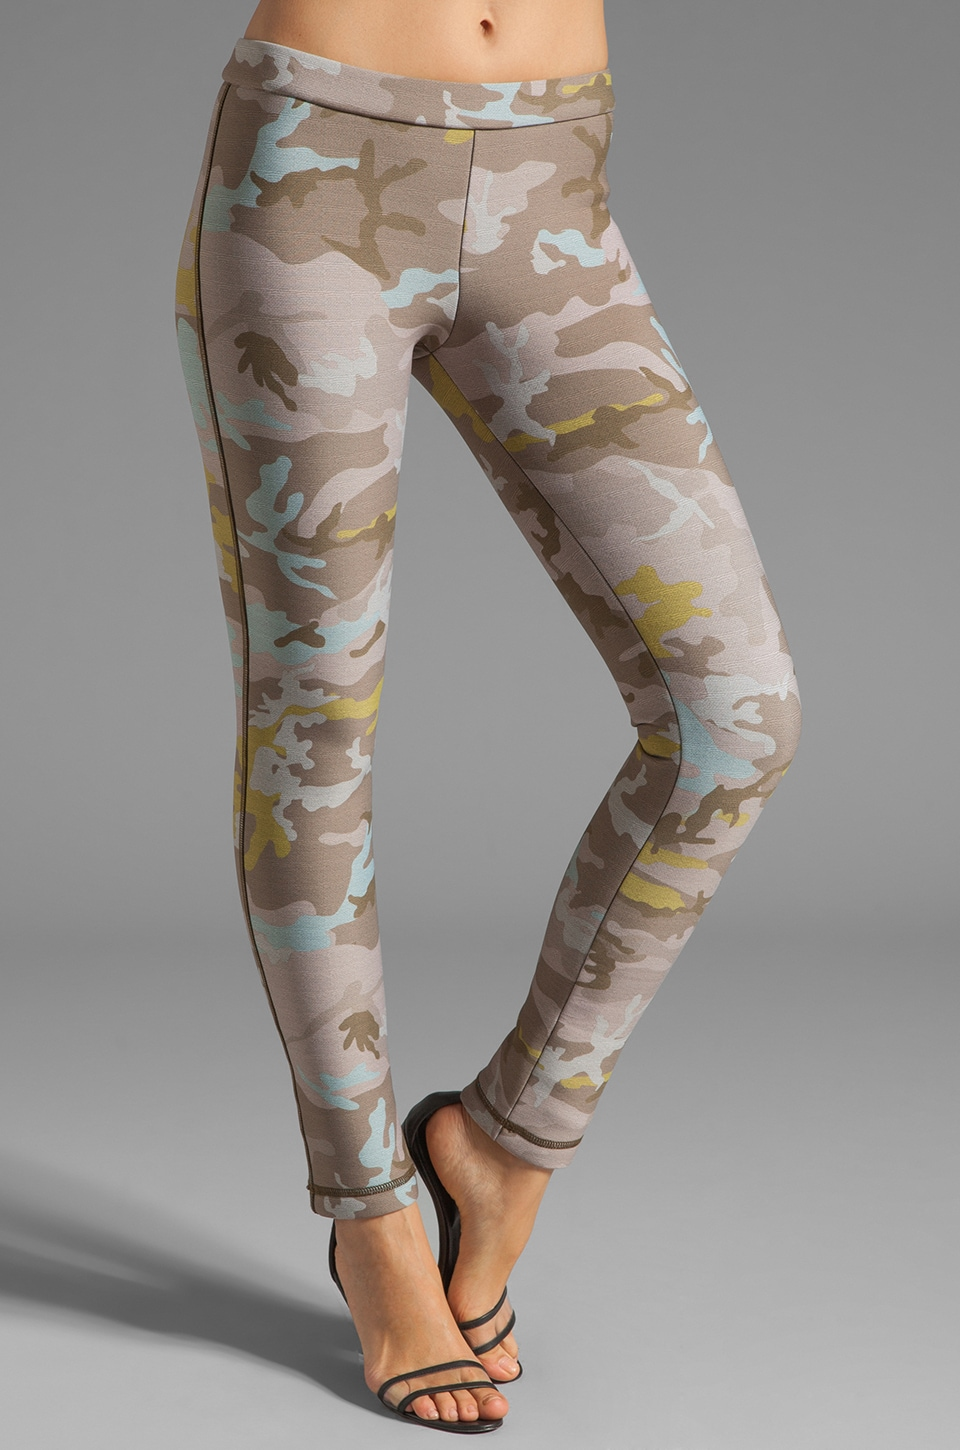 Cynthia Rowley Bonded Leggings in Camo